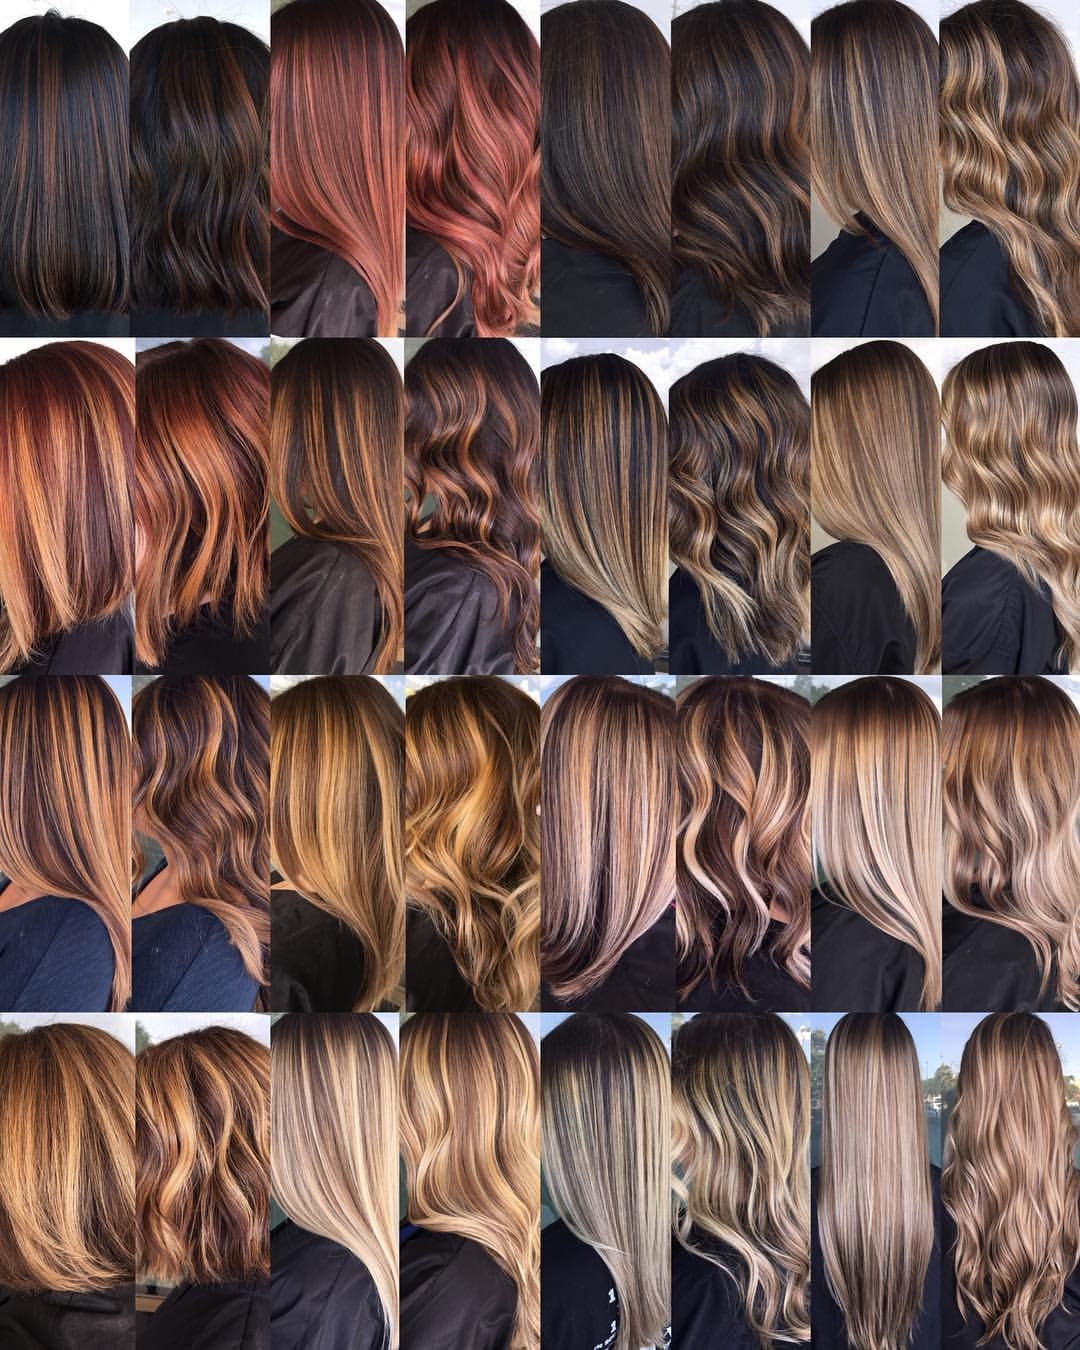 224 Likes 10 Comments Brittany Banda Texasbalayage On Instagram Warm Vs Cool Ca Warm Undertone Hair Color Tone Hair Brunette Hair Color